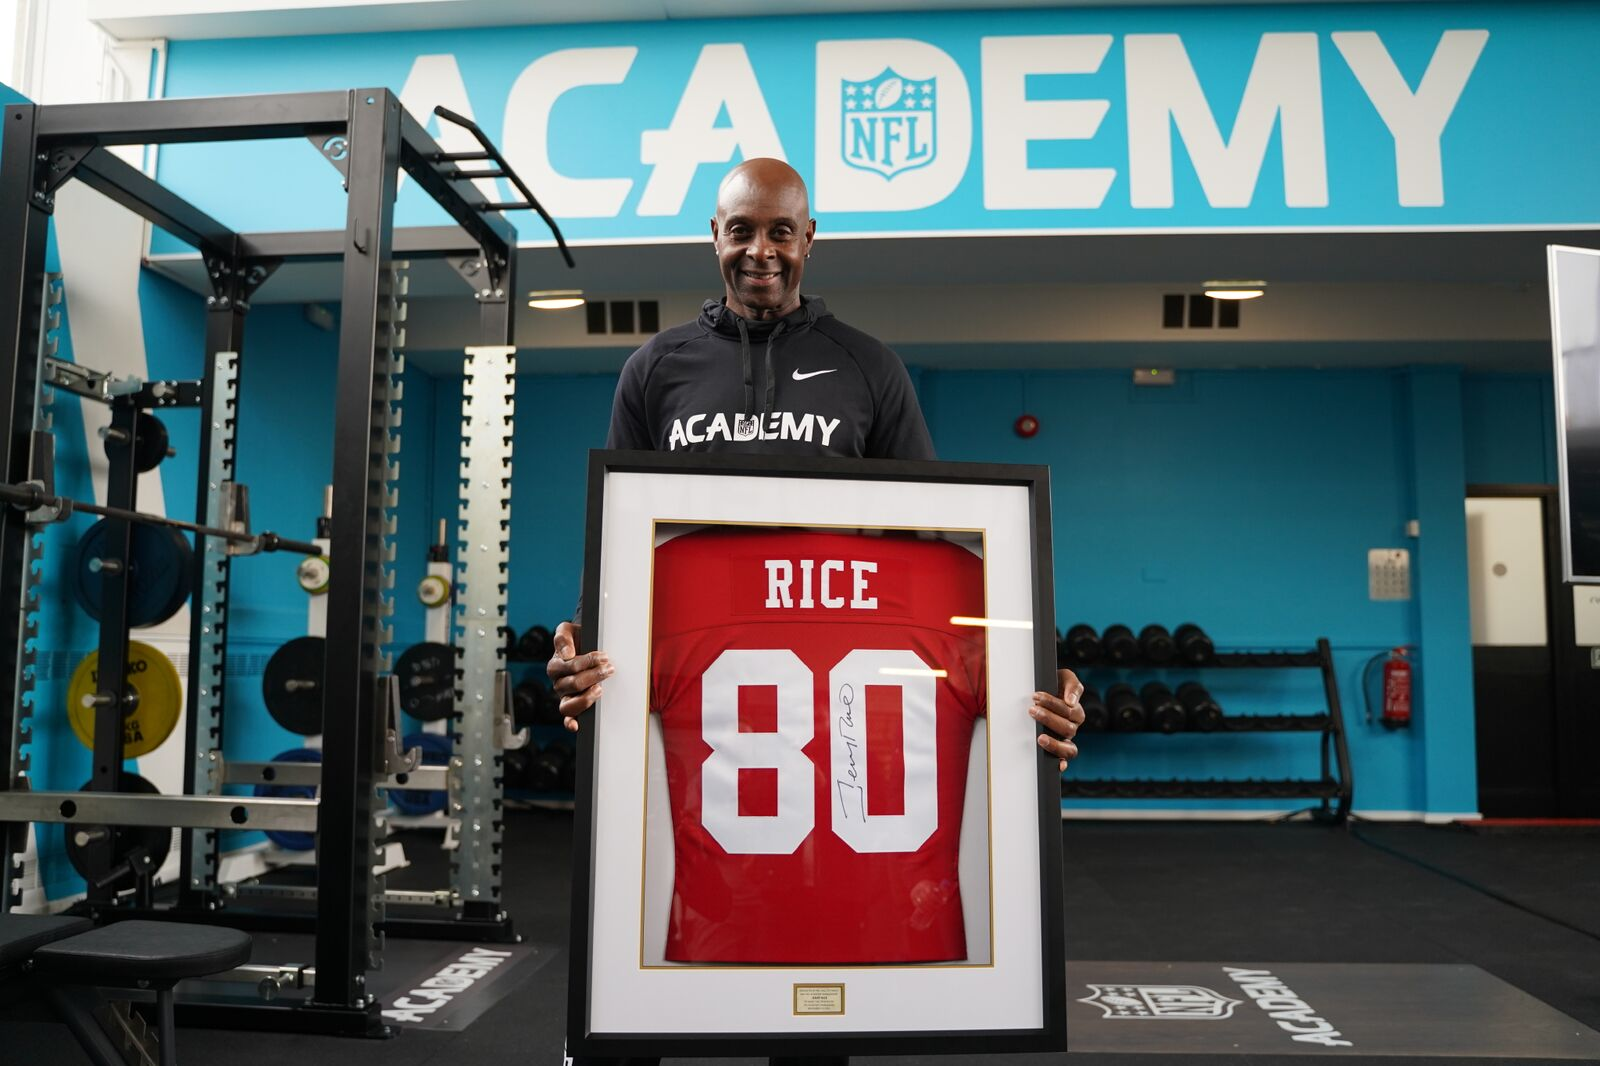 RICE VISITS NFL ACADEMY AT NORTH LONDON TRAINING SITE